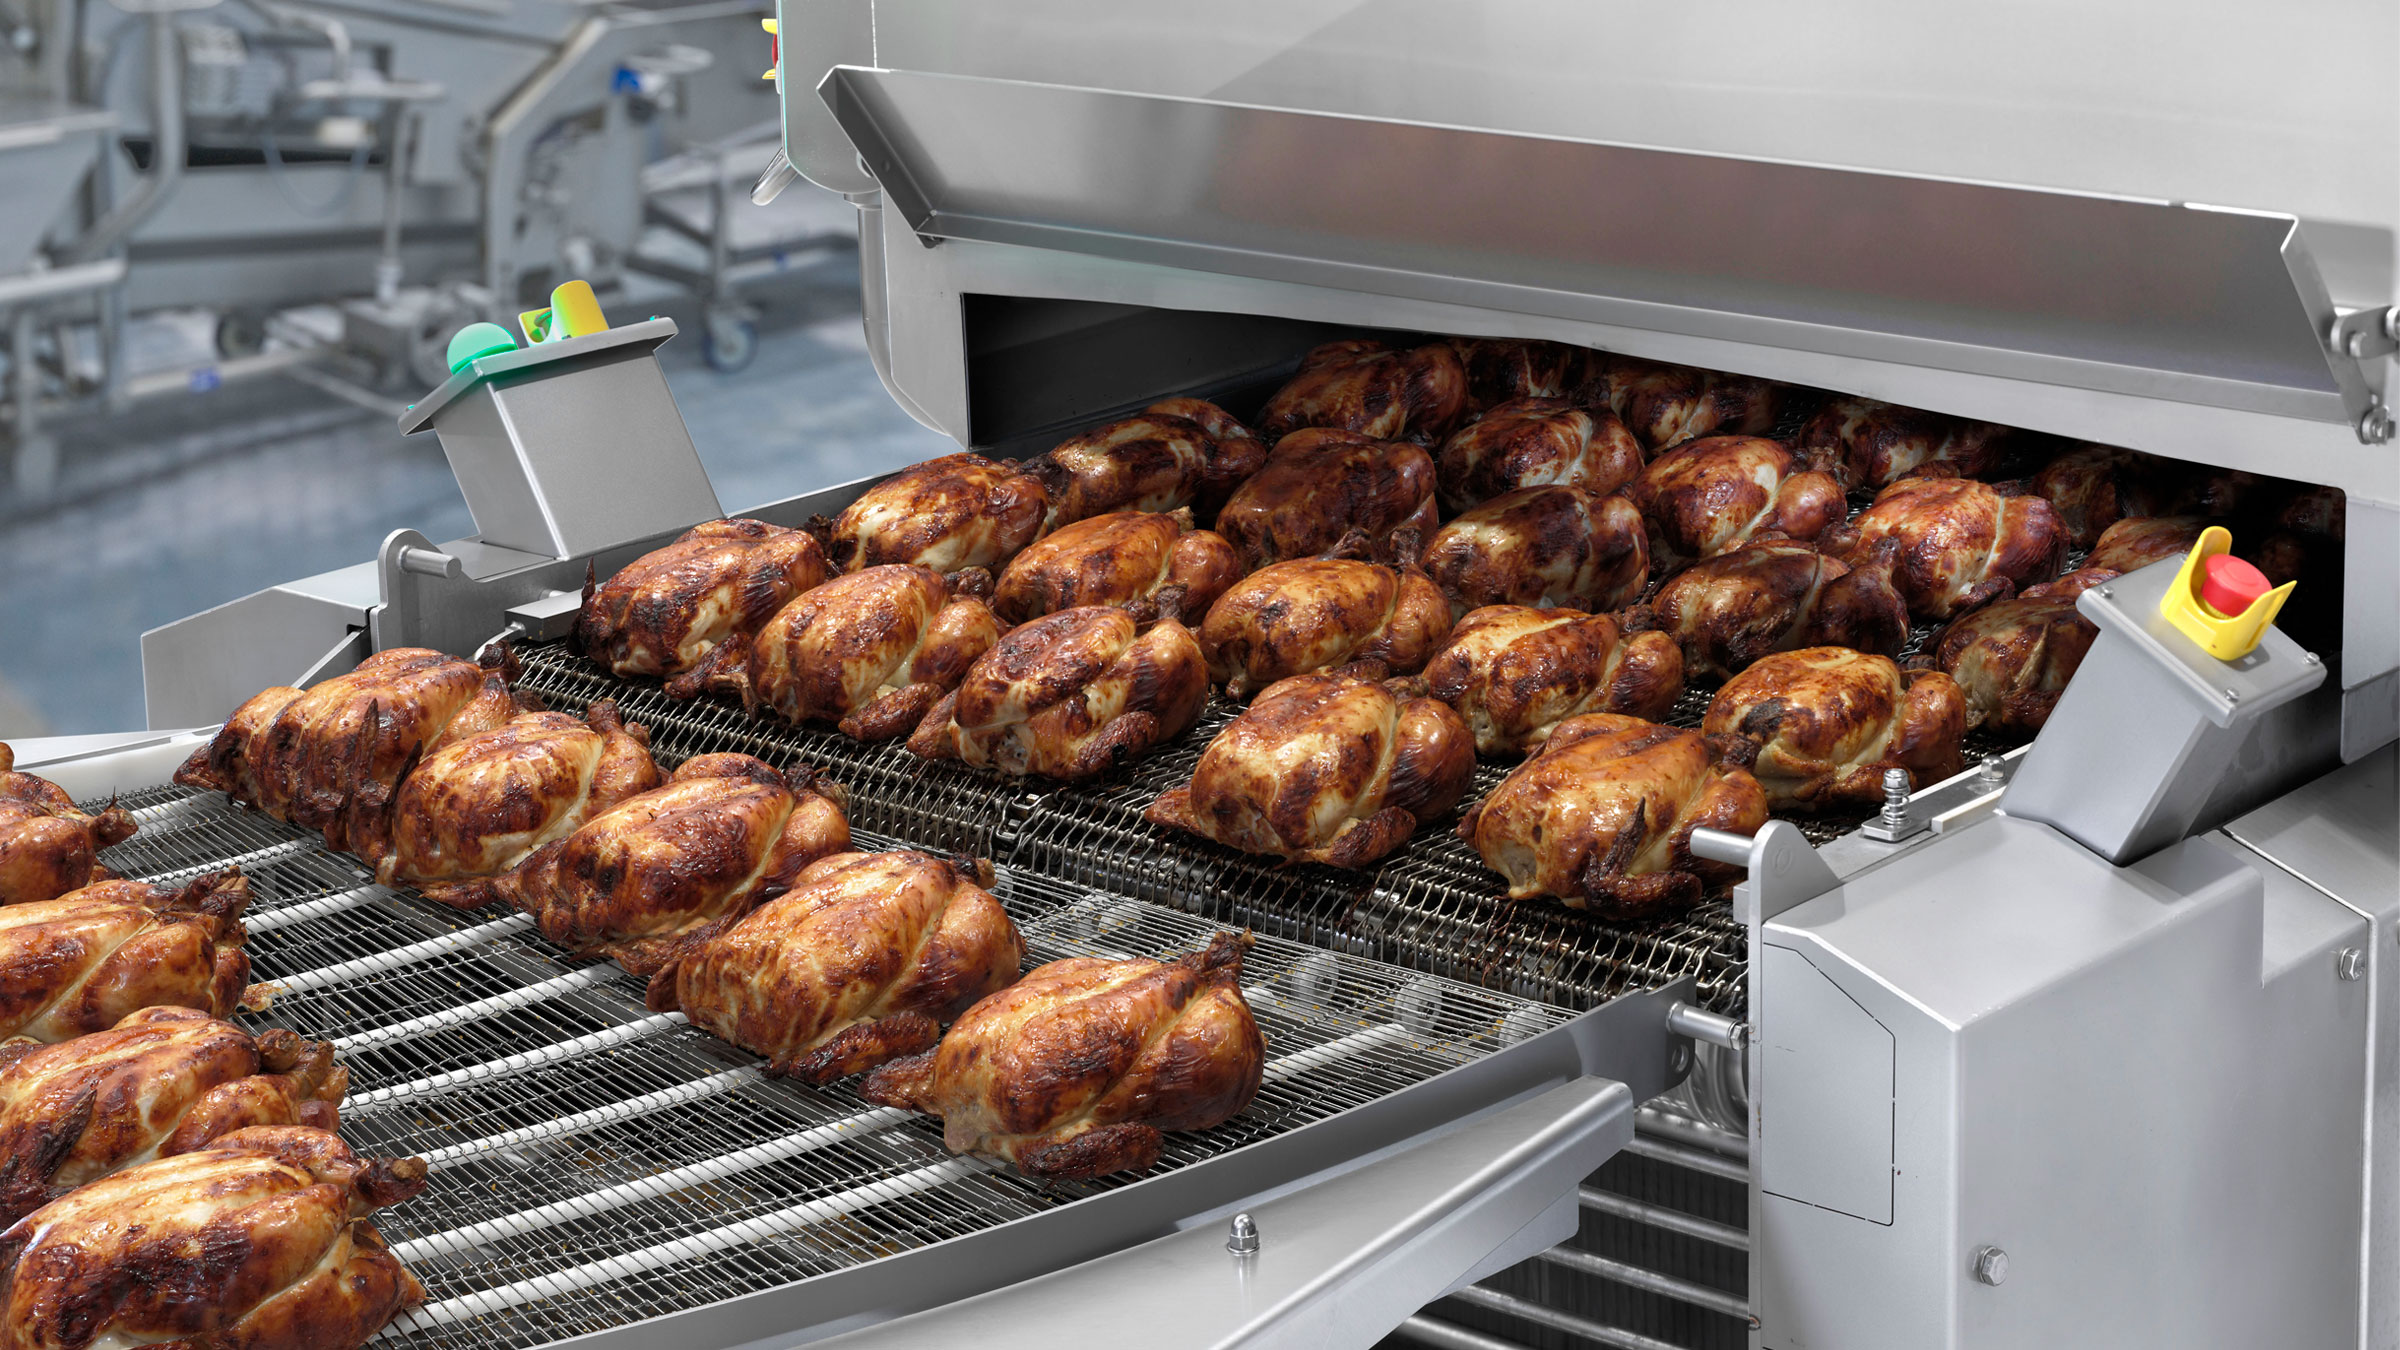 Roasted whole chickens on CookStar 1000 Gen 3 industrial oven